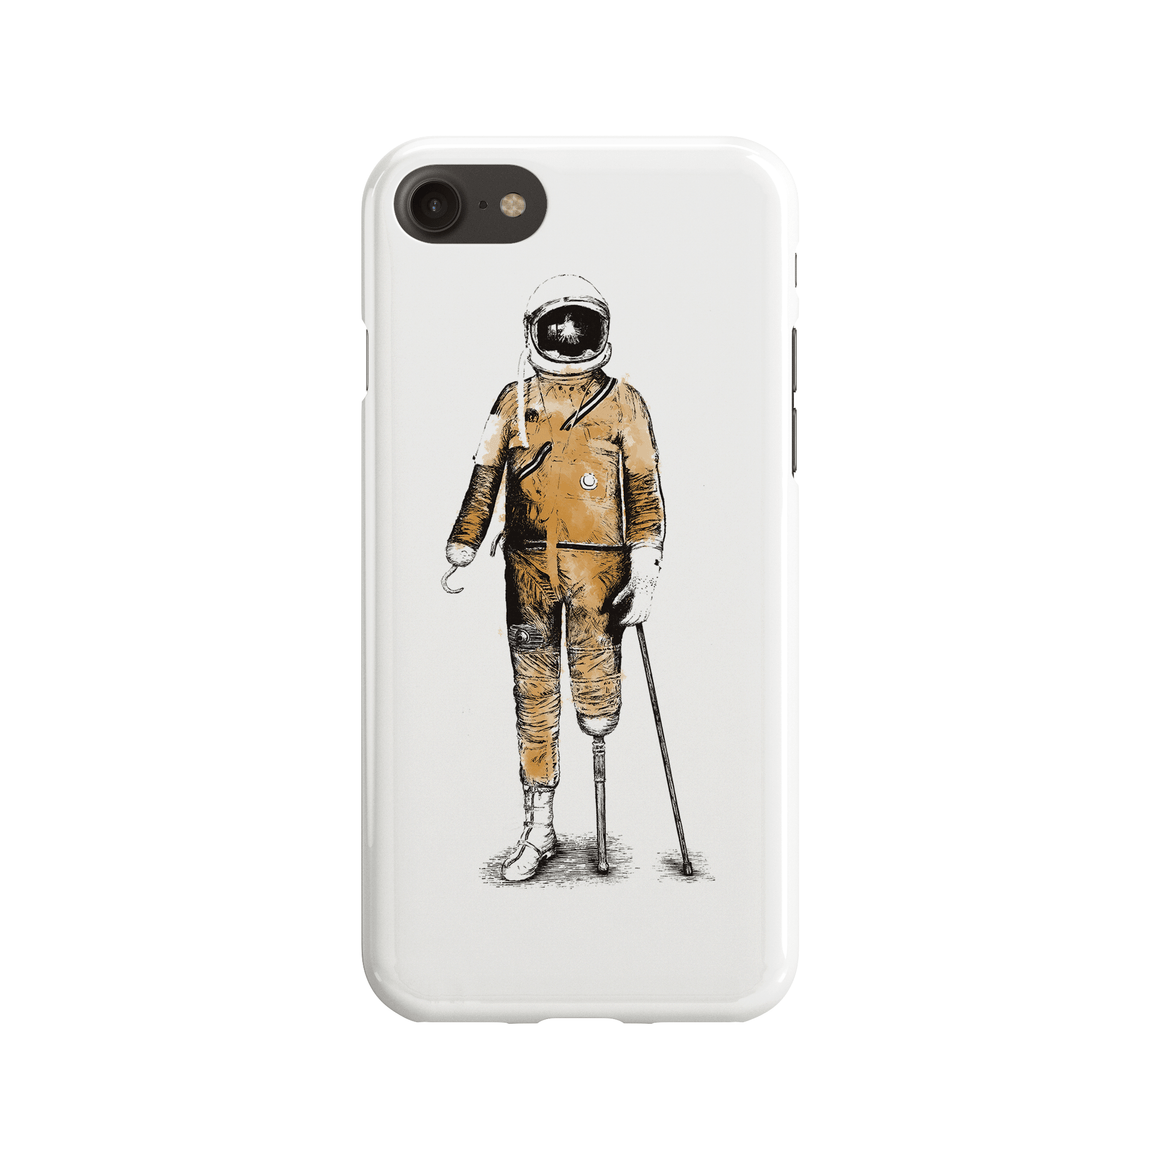 Astropirate Phone Case - Premium Artwear Curartee